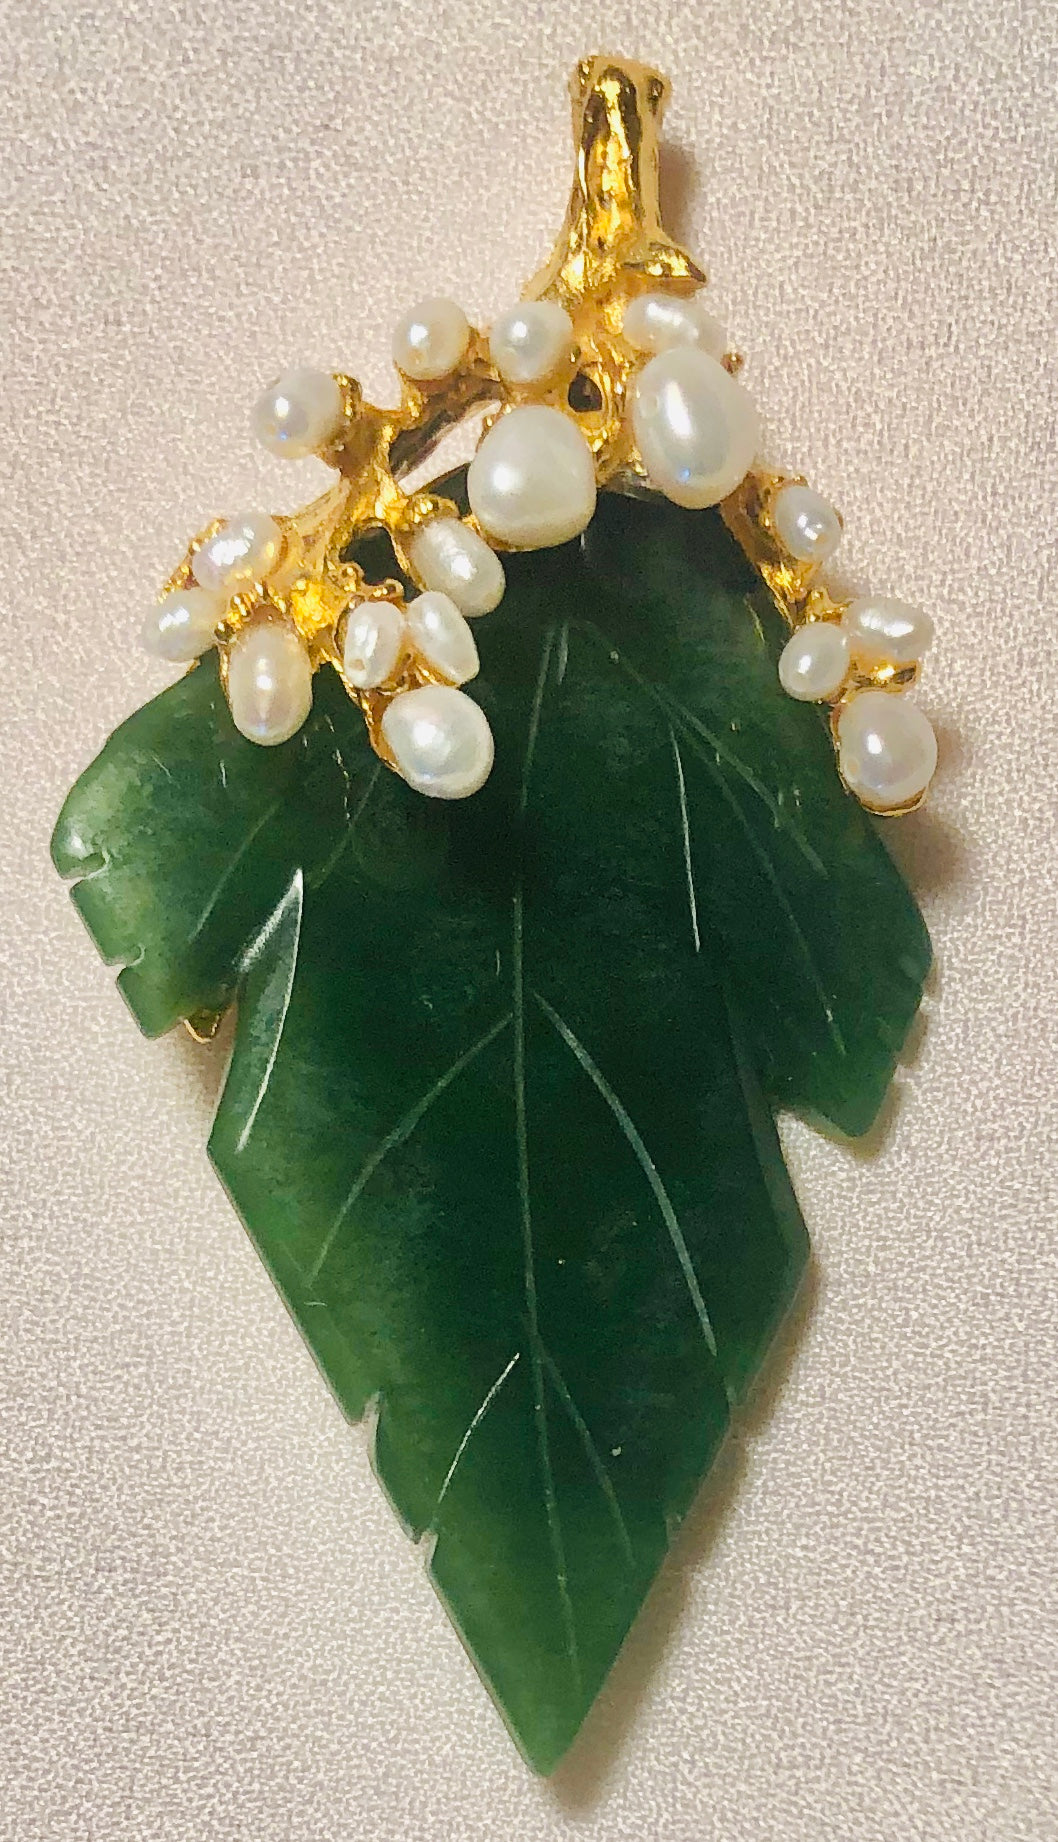 Jade and Pearl Pendant / Brooch